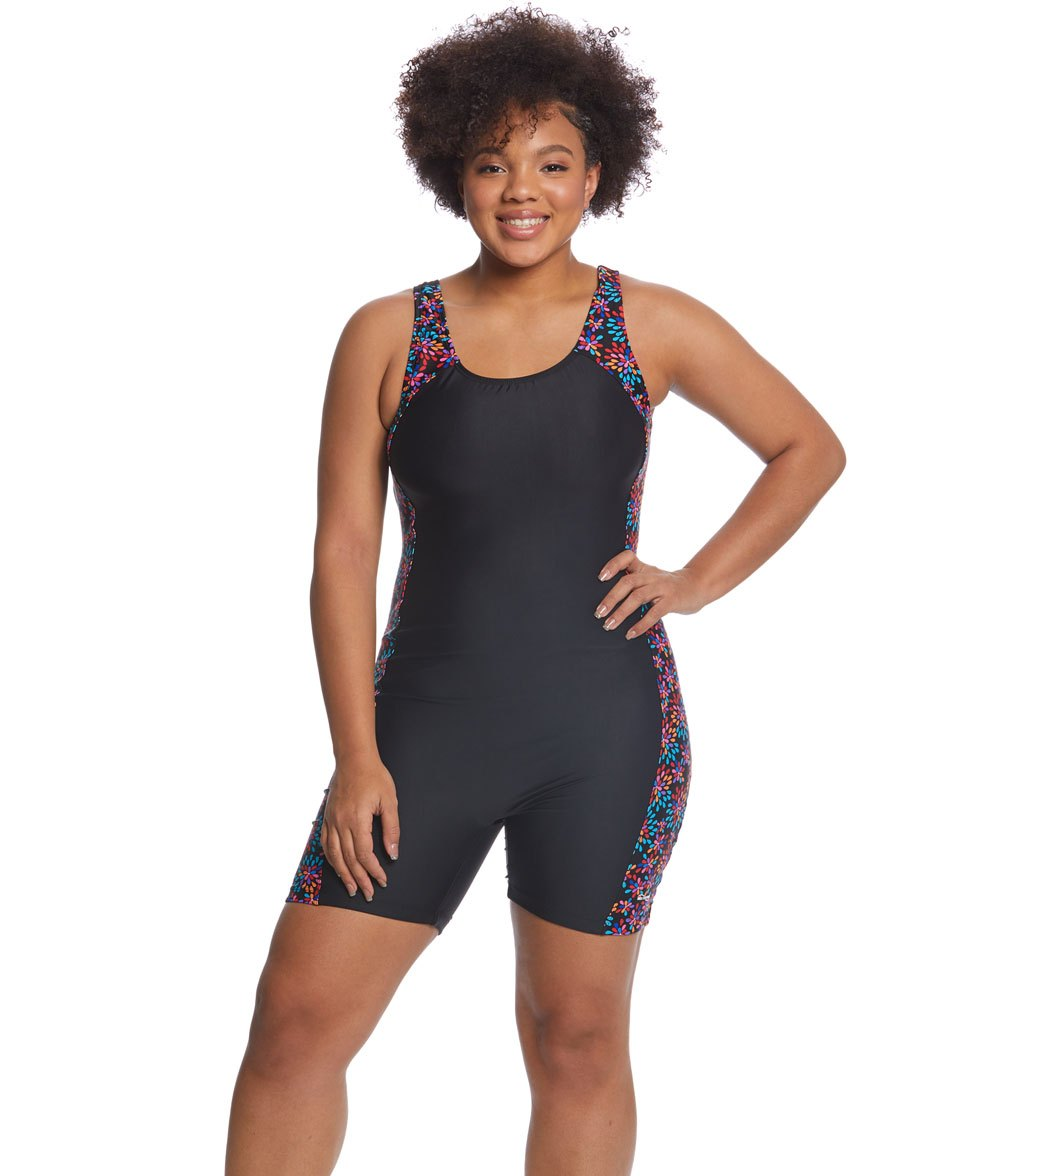 Waterpro Women s Plus Size Floral Burst Splice Unitard at SwimOutlet.com -  Free Shipping 7d4bbf41a